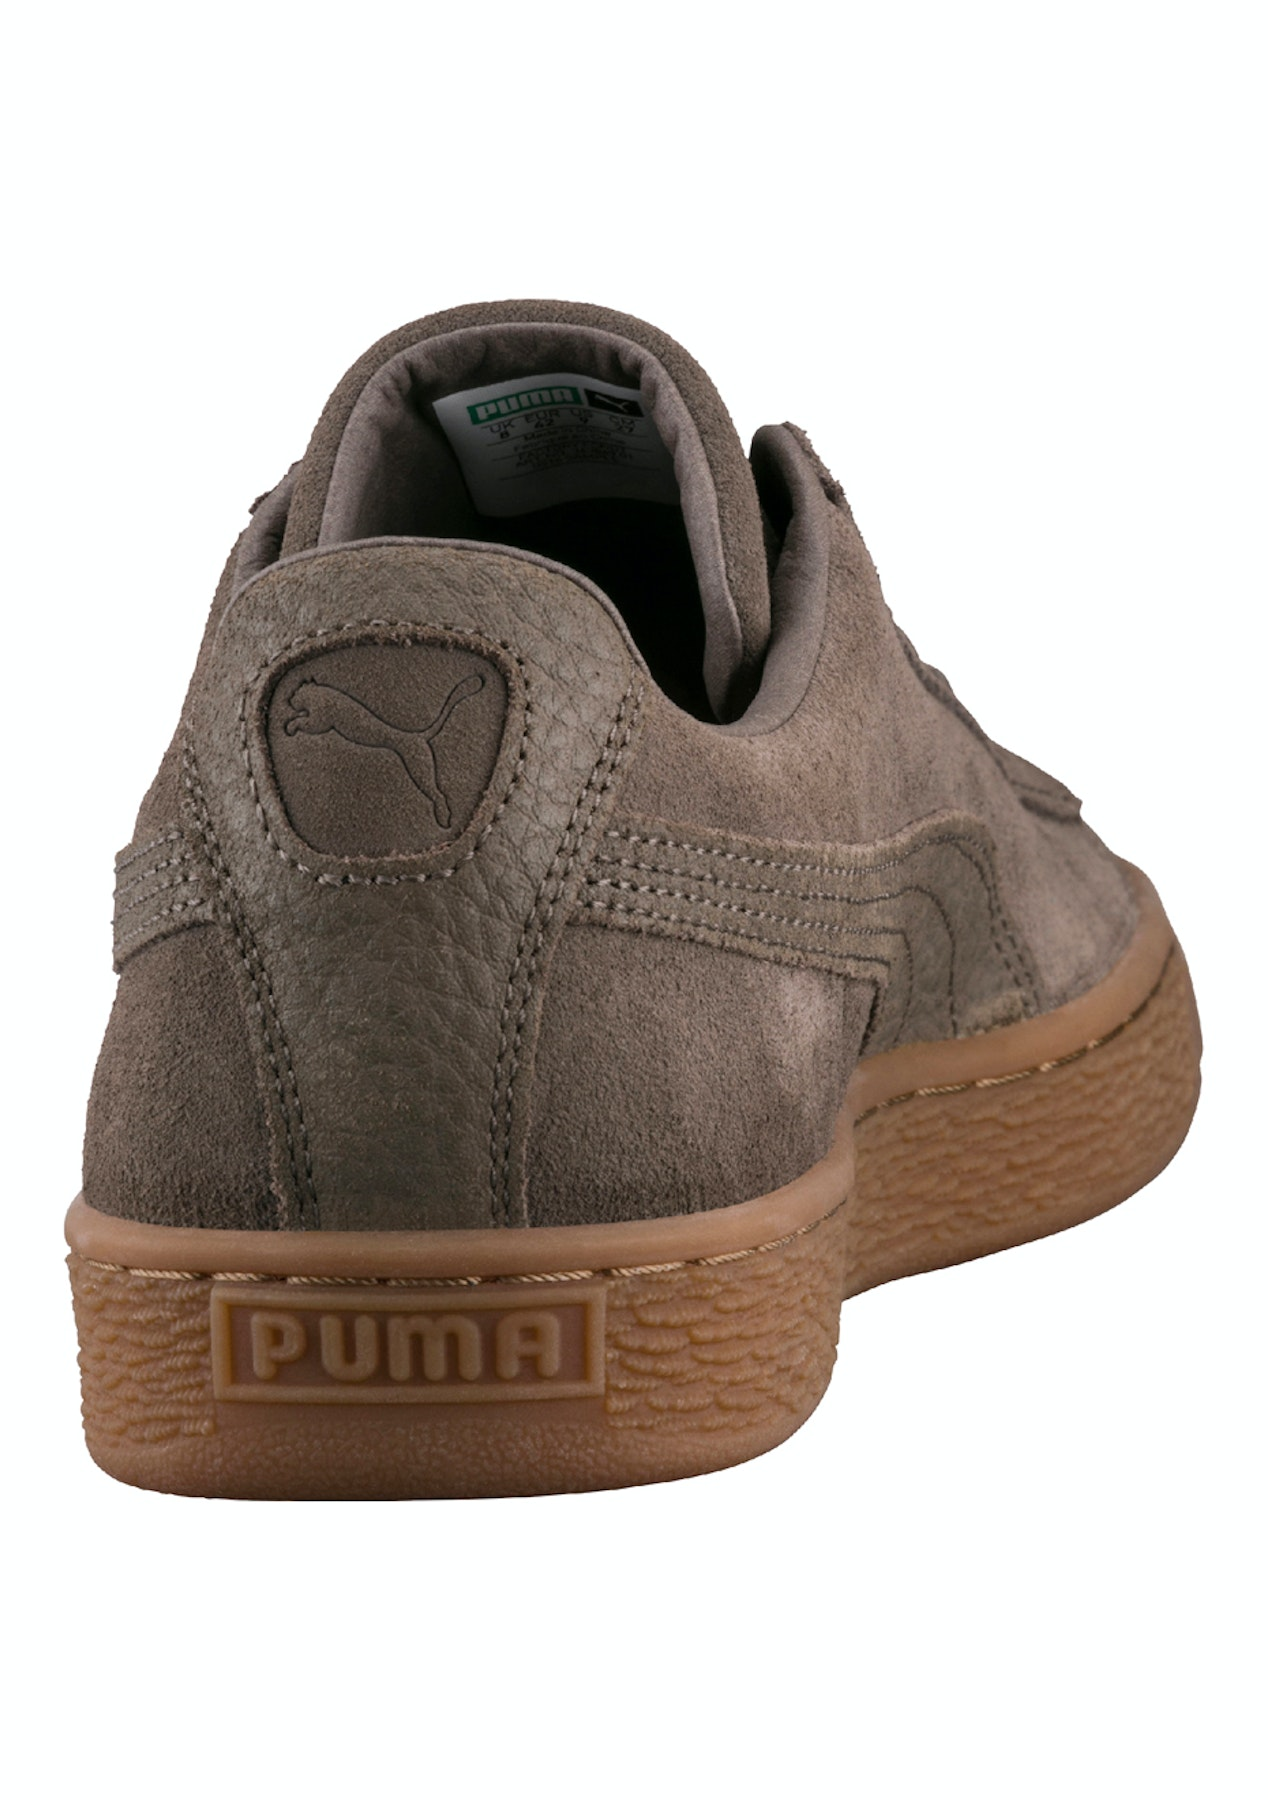 buy online a1235 9cacb Puma Mens - Suede Classic Natural Warmth - Tan